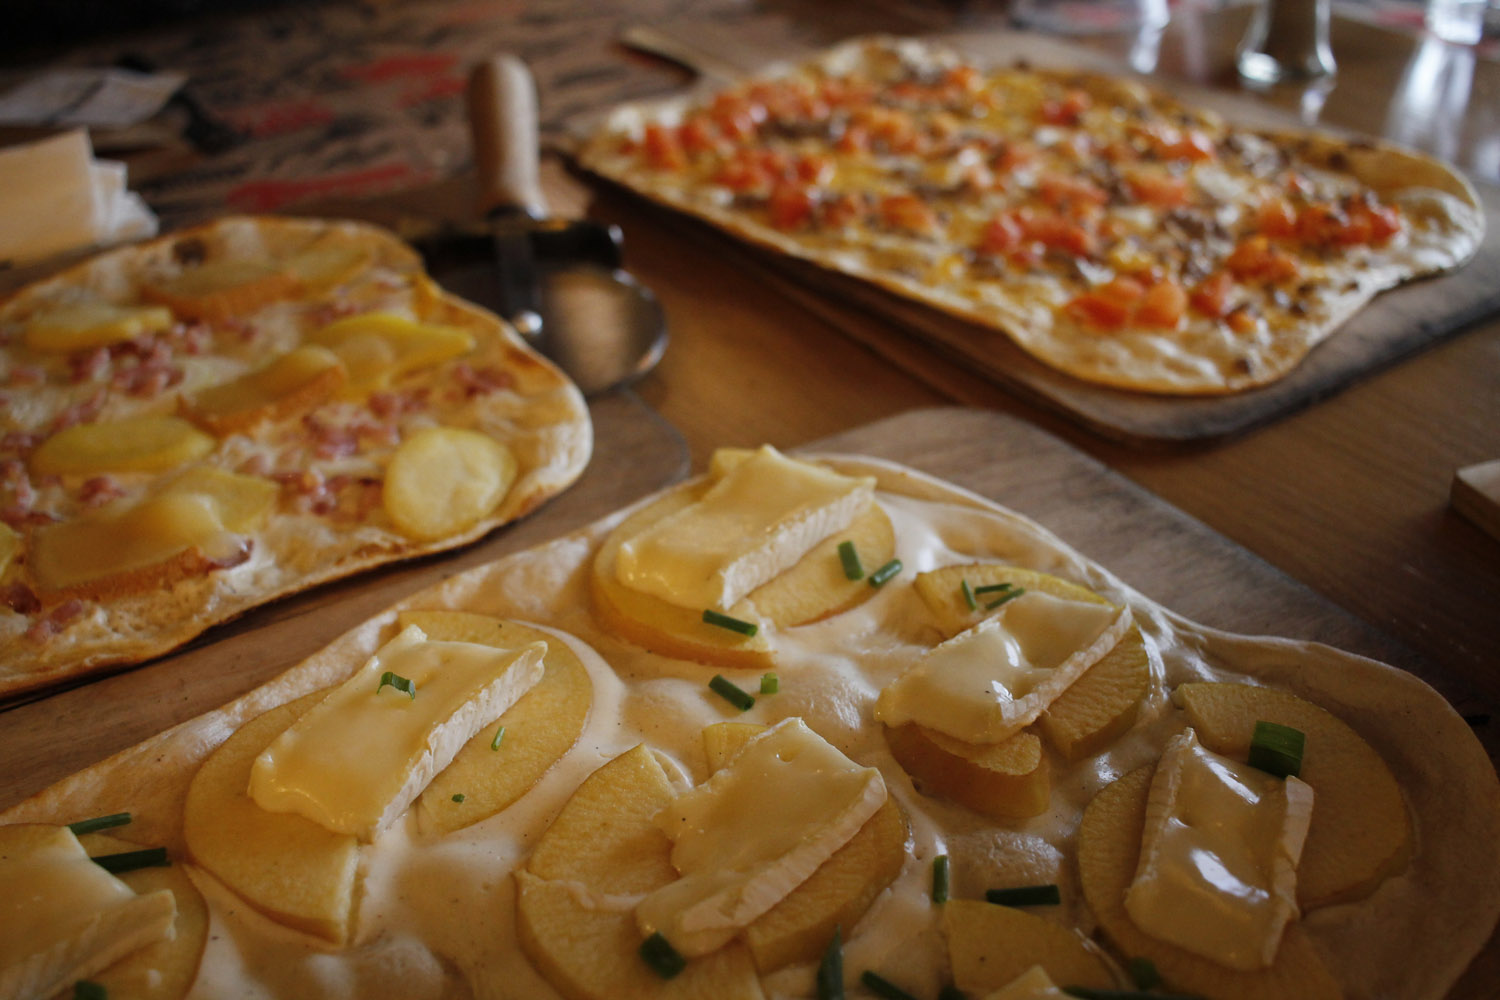 Selection of flammekueche, a traditional dish to share between friends.